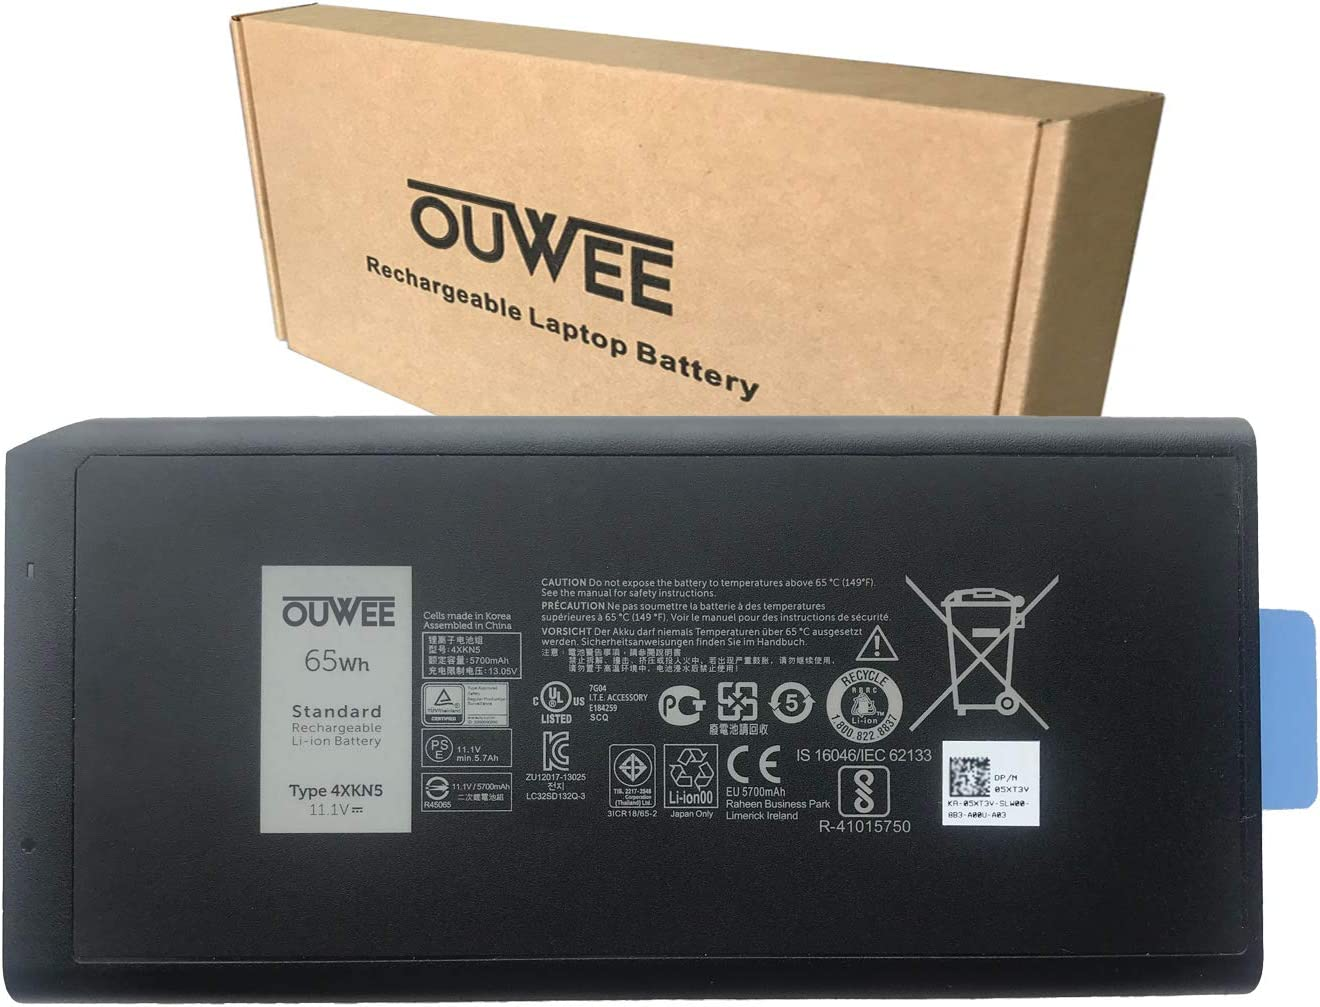 OUWEE 4XKN5 Laptop Battery Compatible with Dell Latitude 5404 7404 5414 7414 Rugged Extreme Series DKNKD X8VWF CJ2K1 05XT3V 0VCHGN 09FN4 XN4KN XRJDF YGV51 453-BBBE 0W11Y7 0909H5 11.1V 65Wh 5700mAh